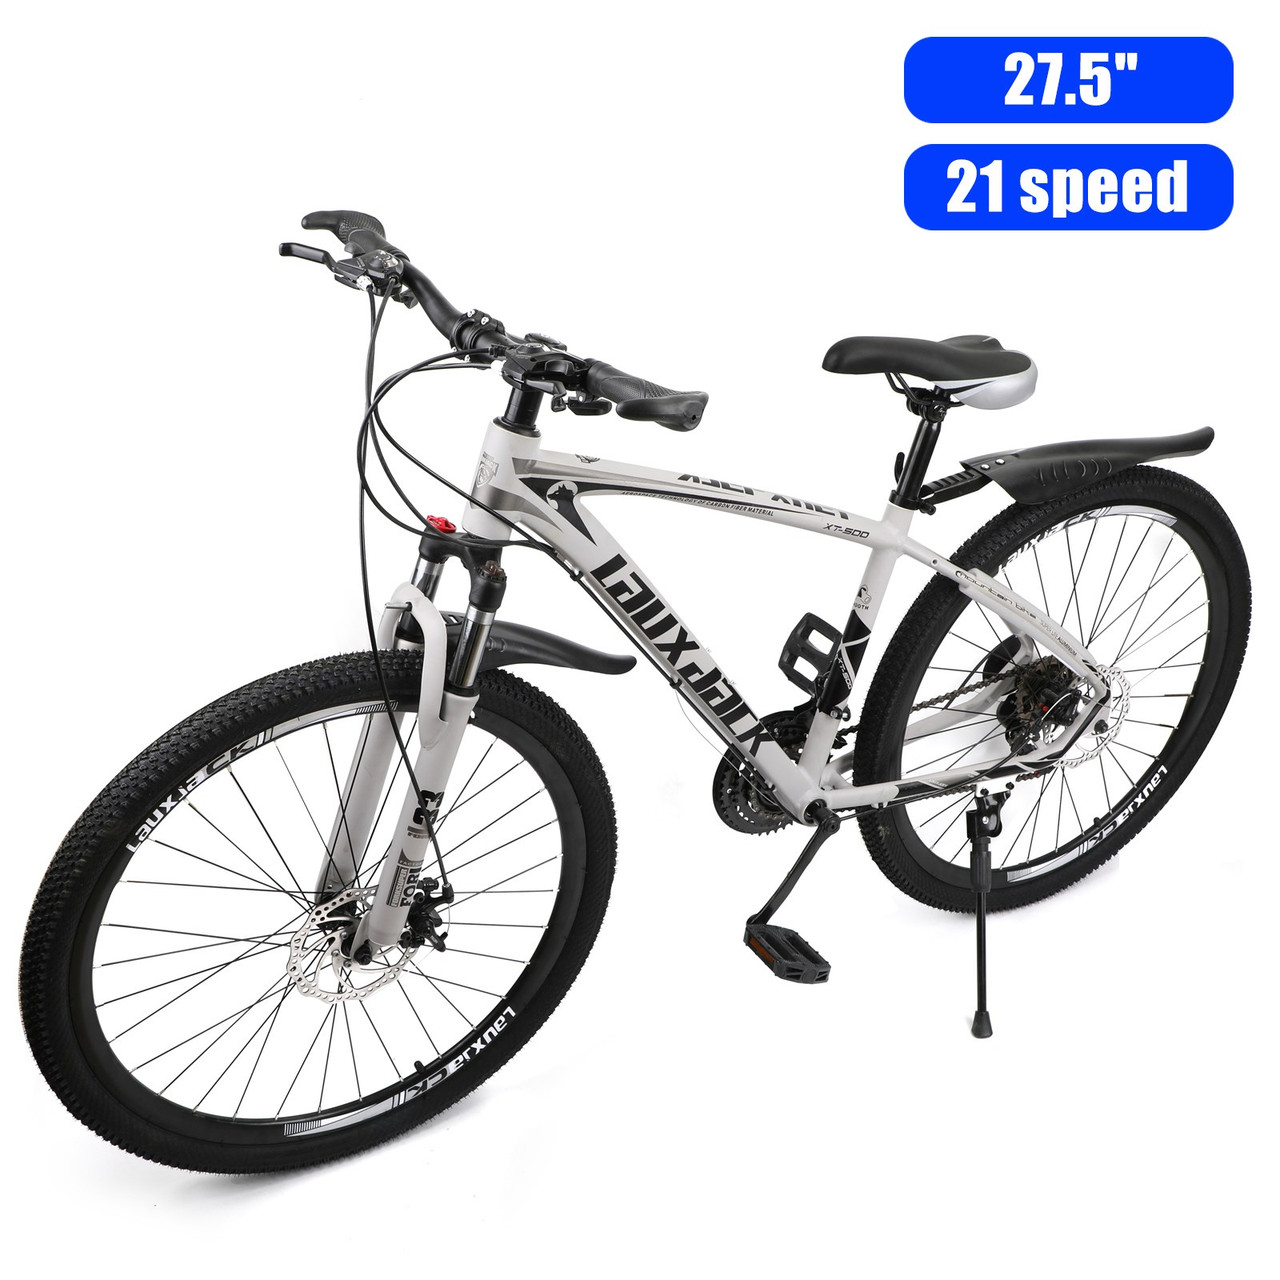 27.5 inches Wheels 21 Speed Unisex Adult Mountain Bike Bicycle MTB White+Black